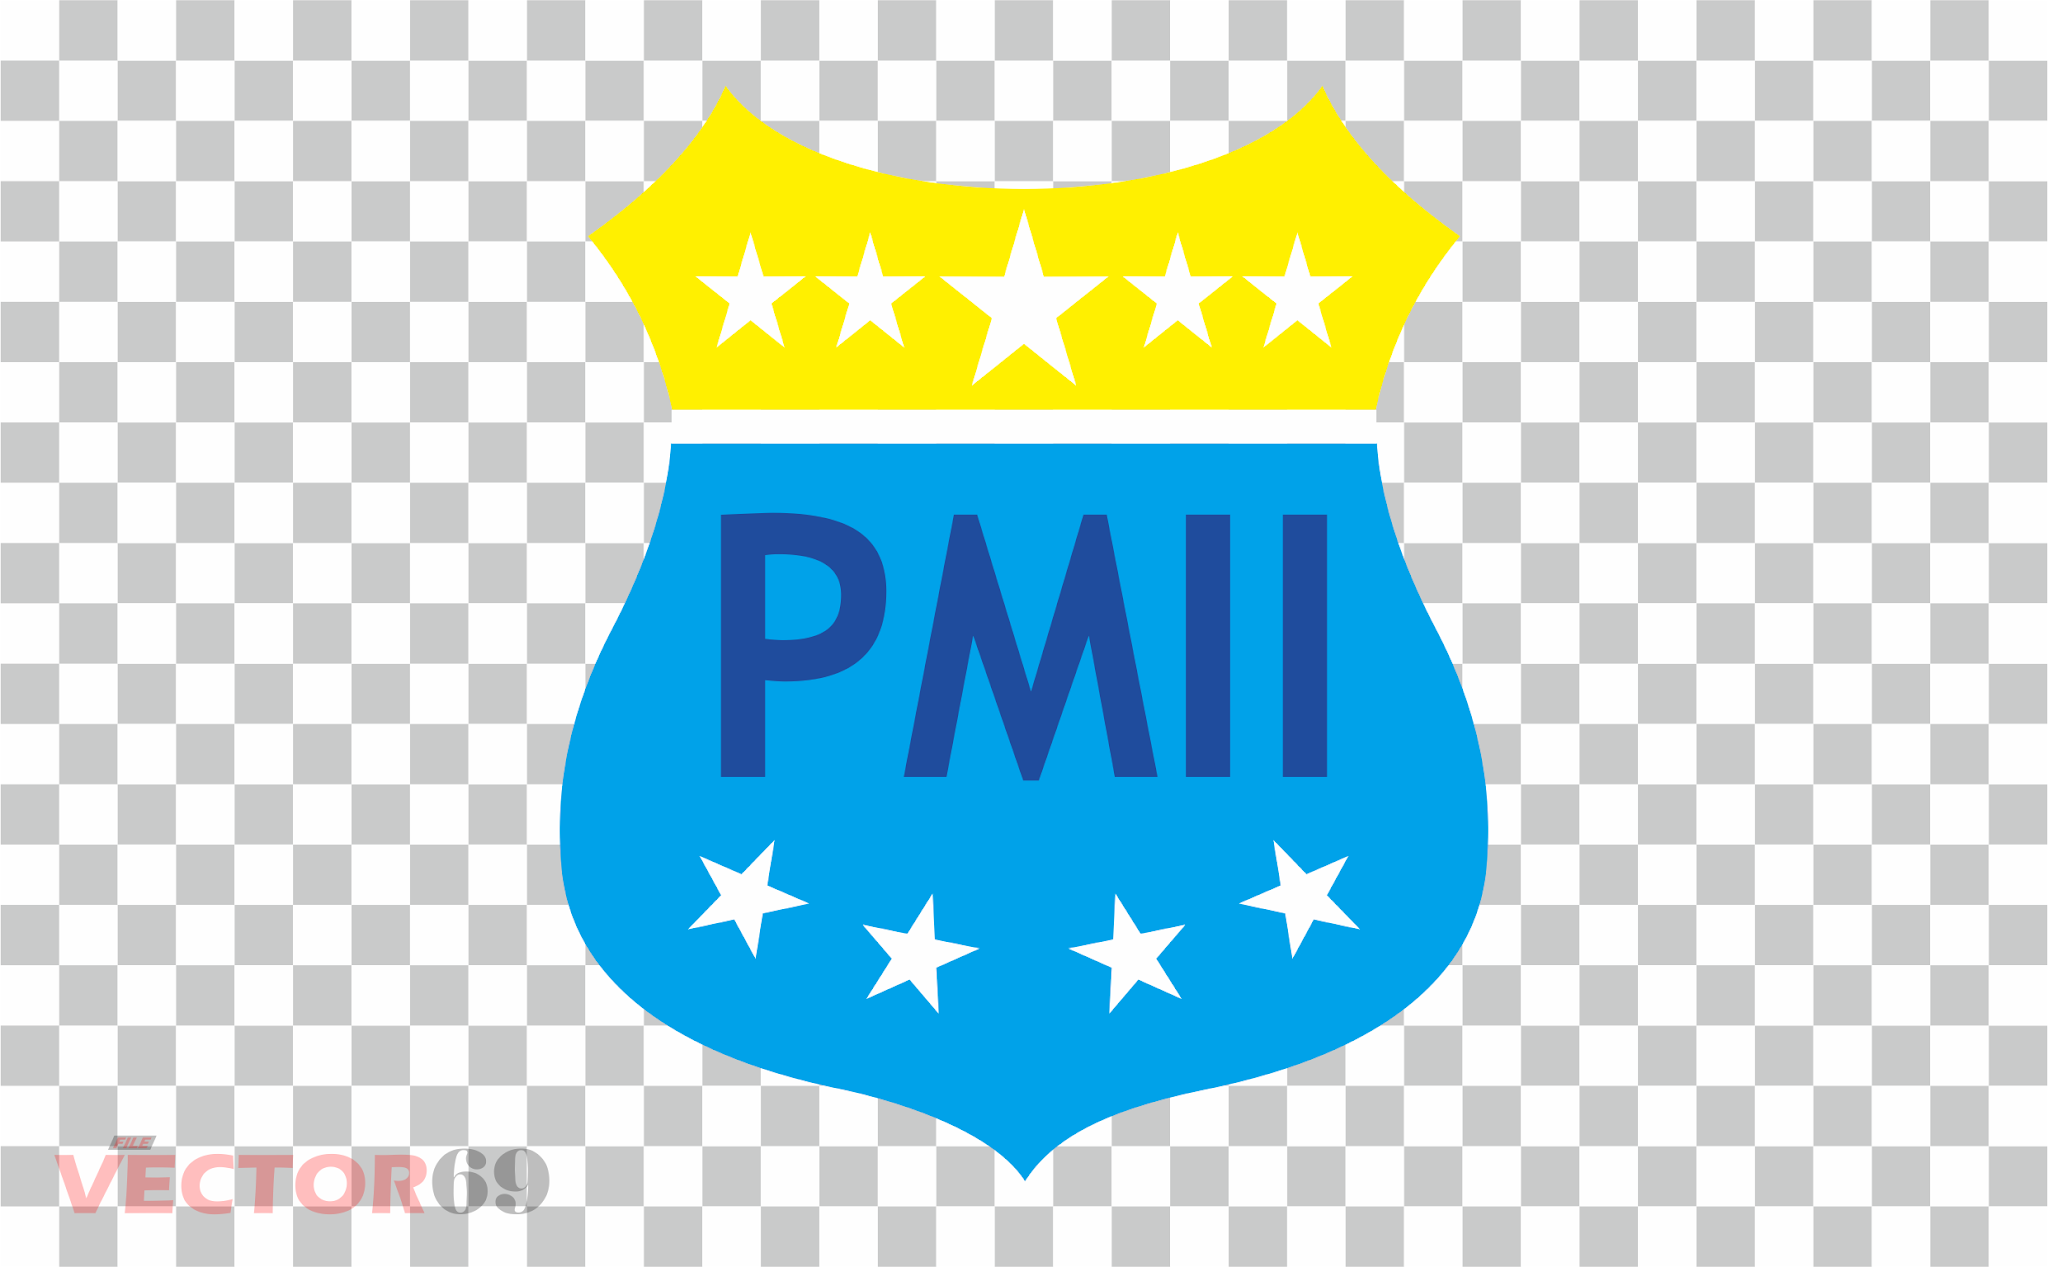 PMII (Pergerakan Mahasiswa Islam Indonesia) Logo - Download Vector File PNG (Portable Network Graphics)